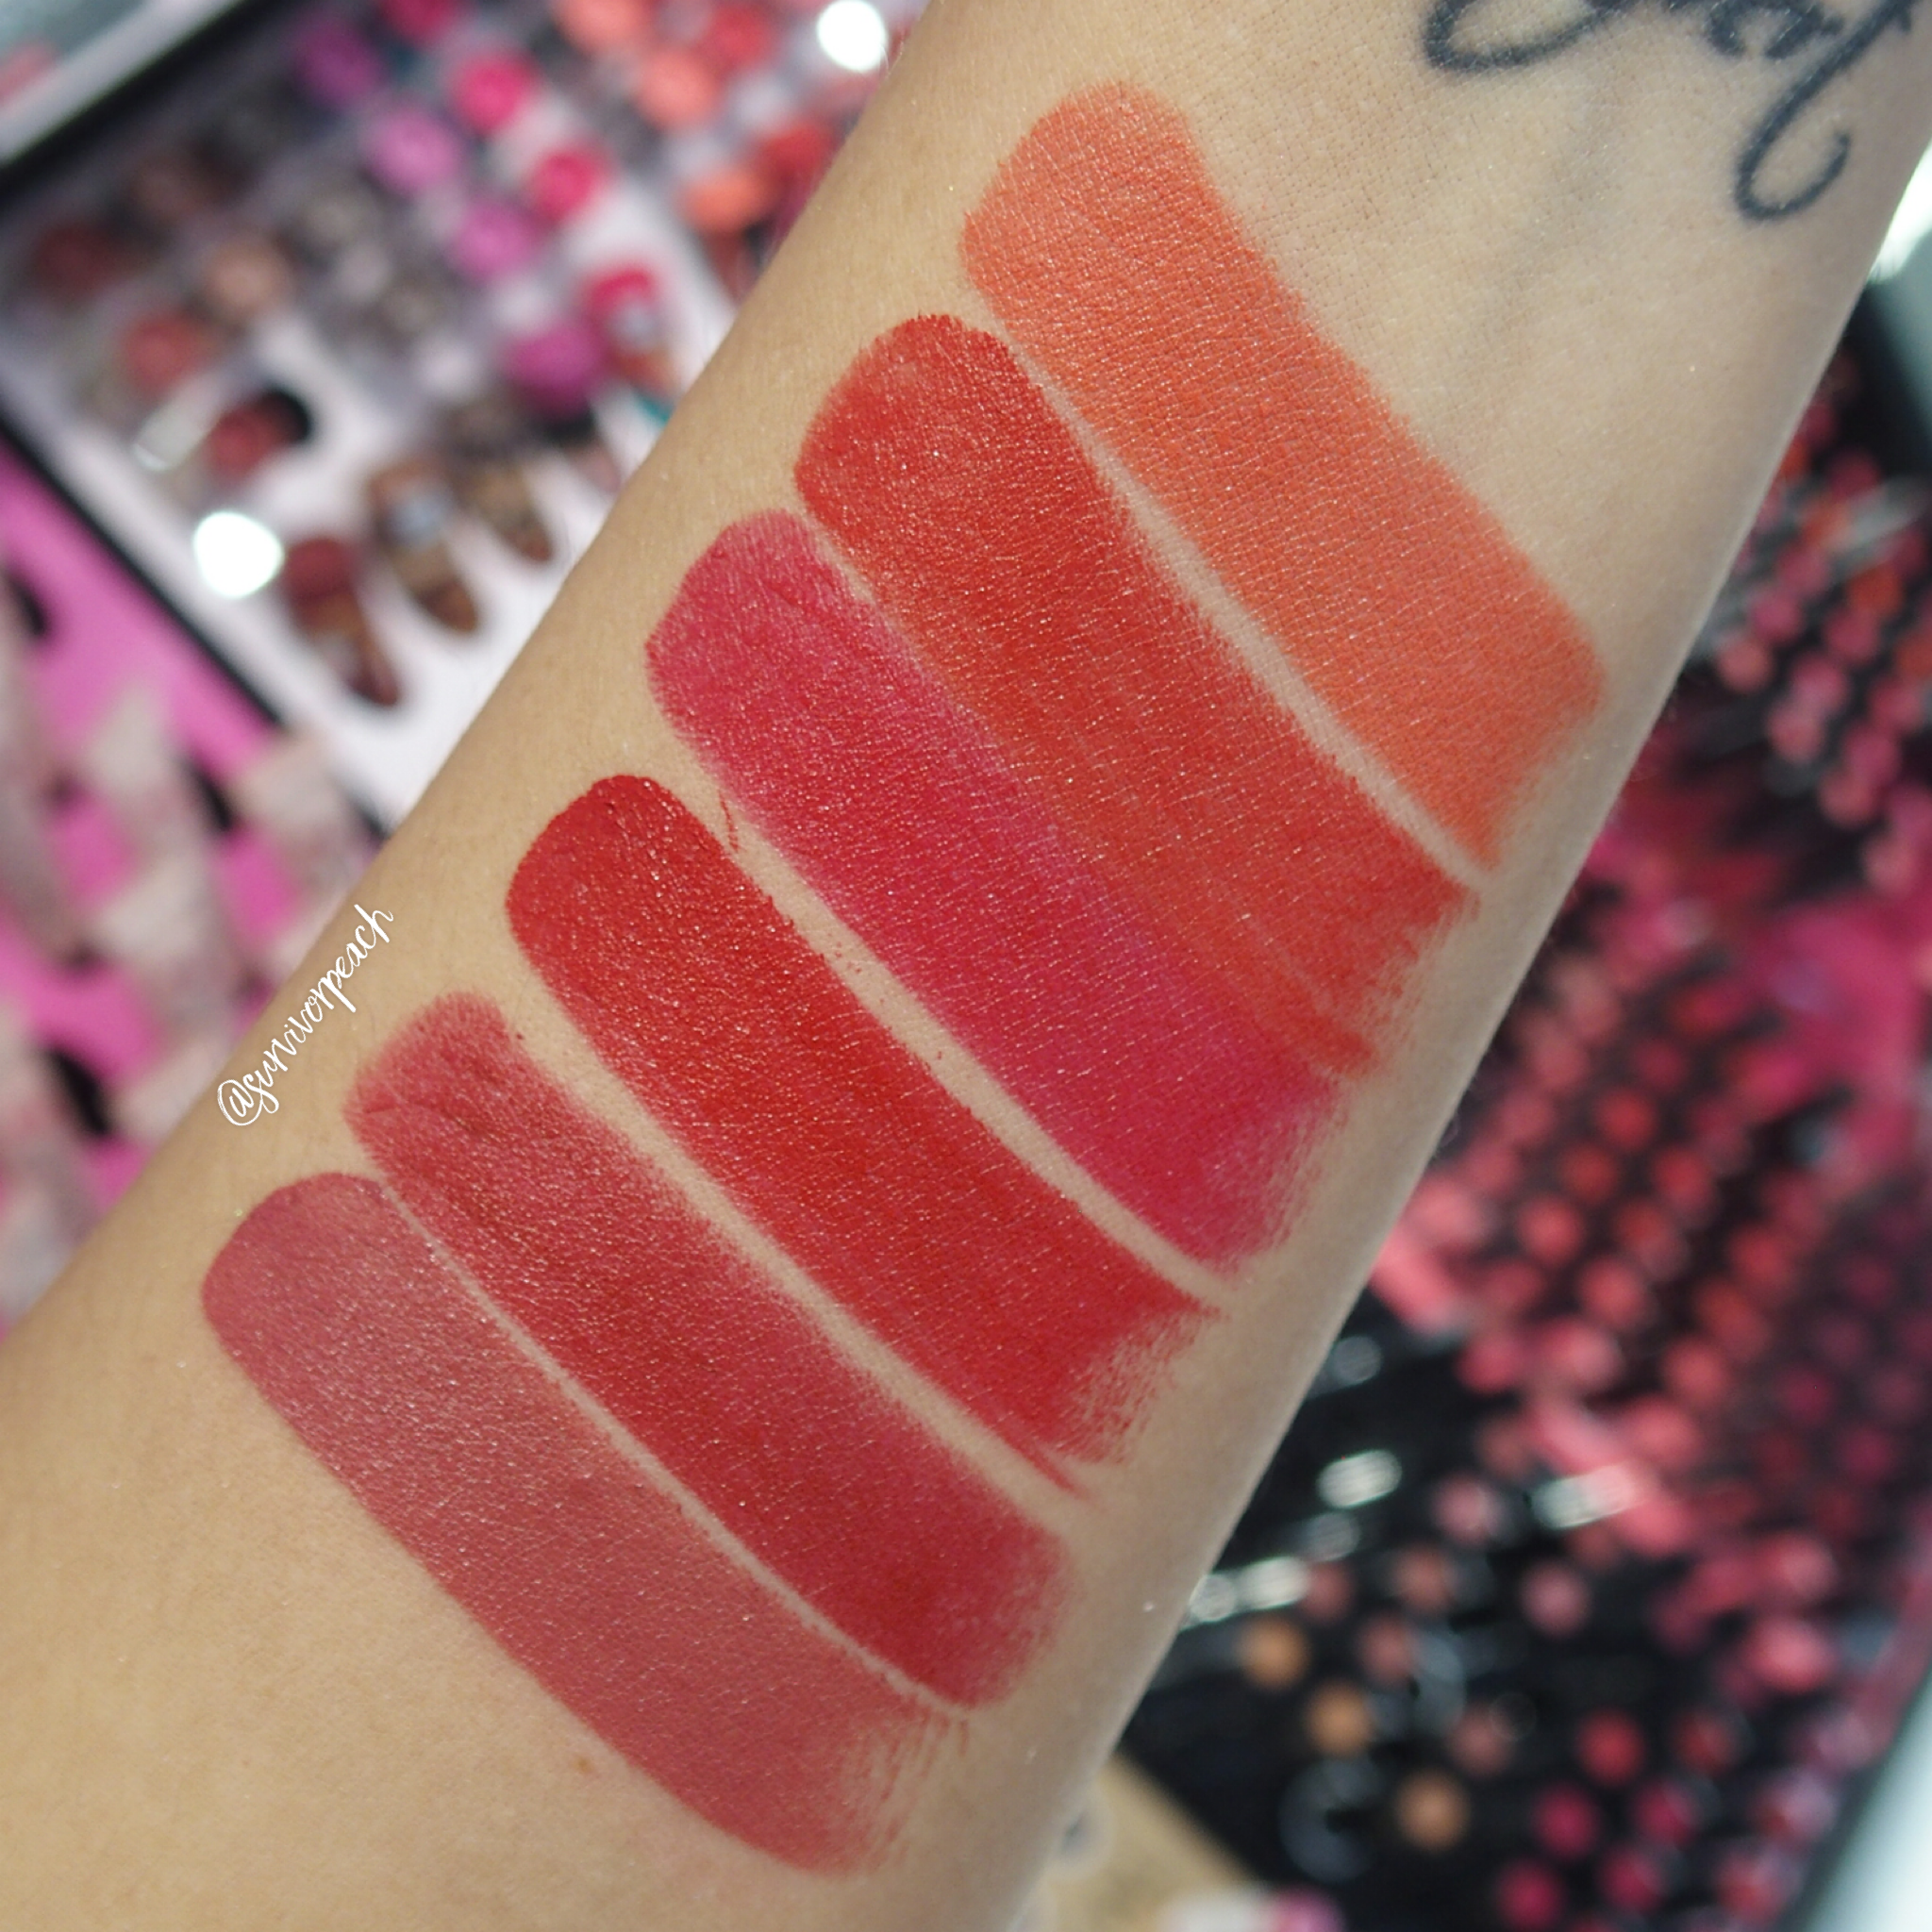 Sephora Collection Rouge Satin Lipstick swatches - S09 Playin' Around, S10 What's Up?, S11 Night Call, S12 On My Way, S13 Feeling Free, S18 Oh Oh!